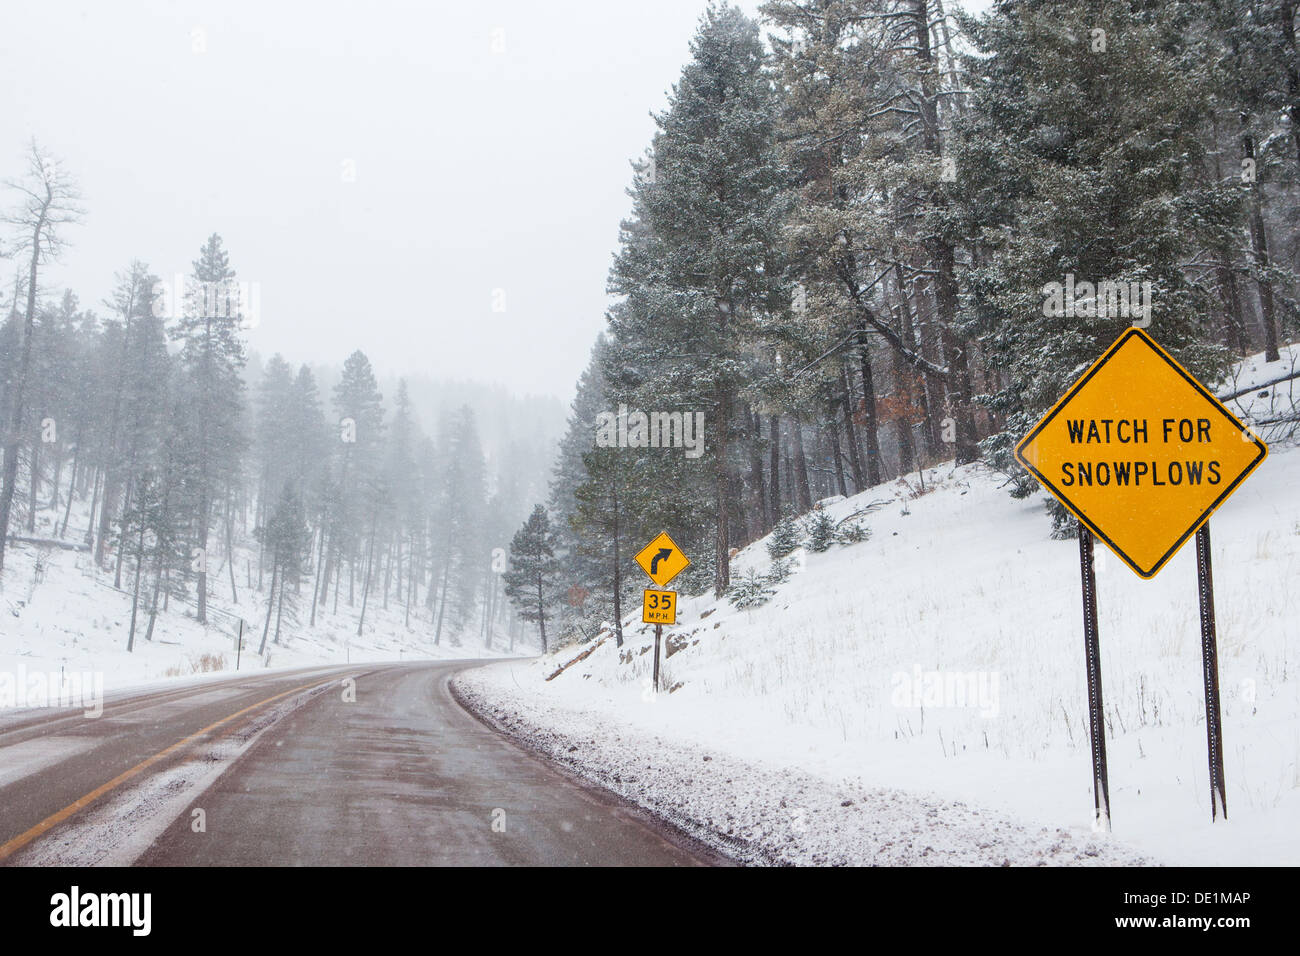 A snowy mountain road with warning signs in Cloudcroft, New Mexico, USA - Stock Image